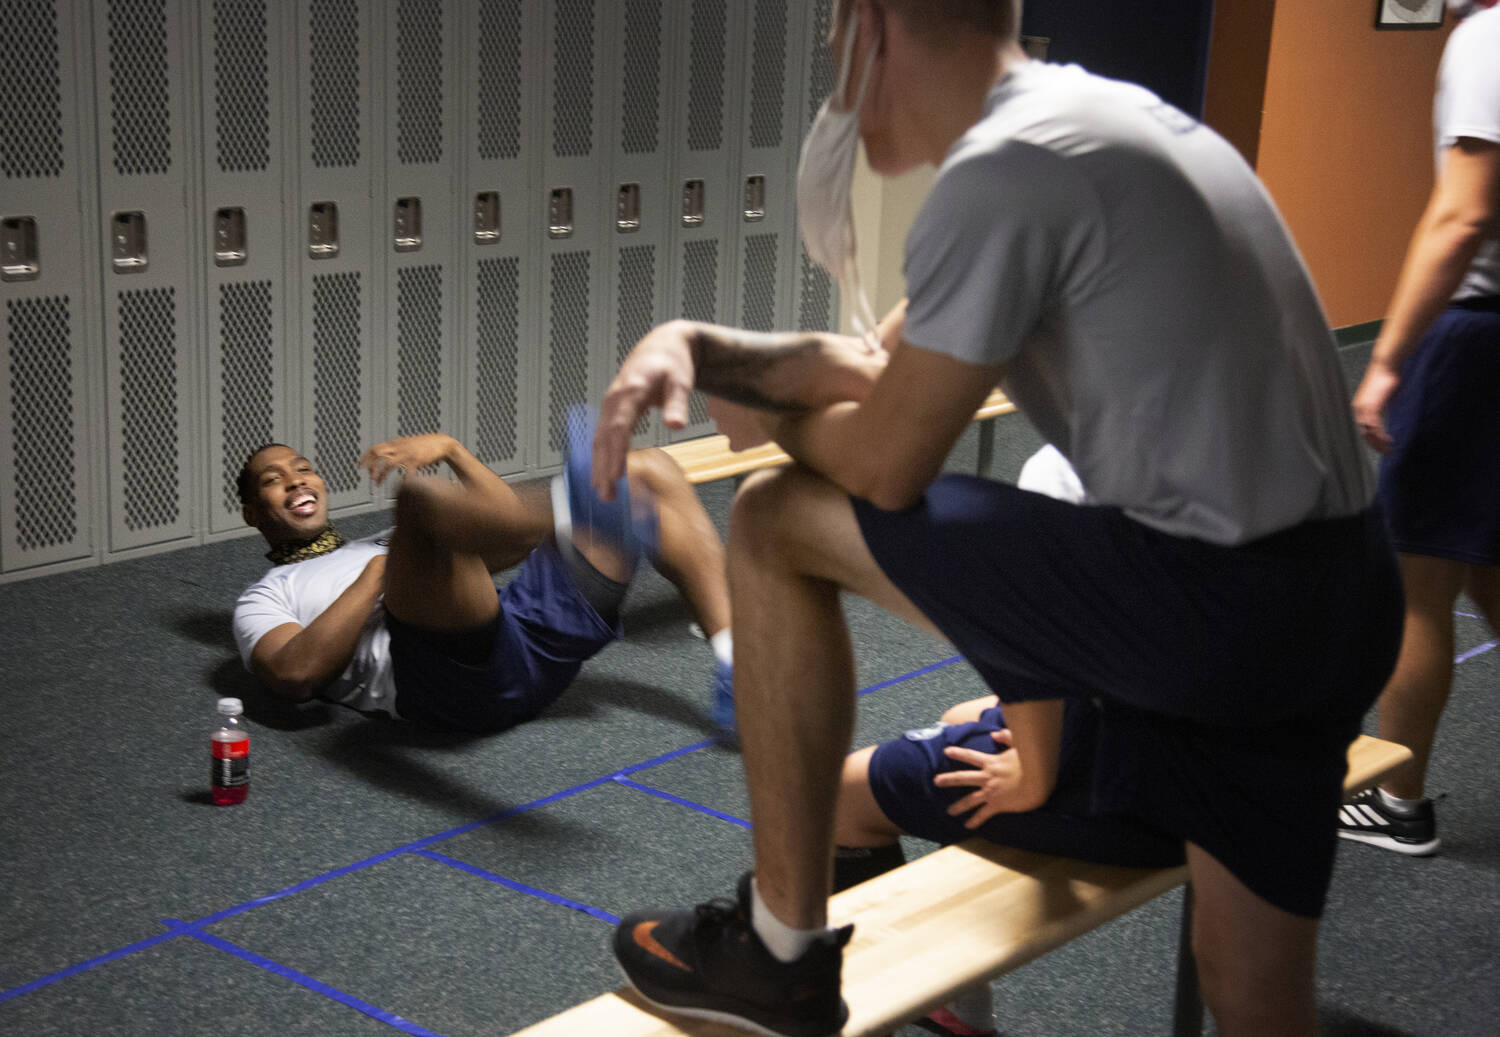 One of the recruits lies on his back in a locker room, laughing with other seated and standing recruits.